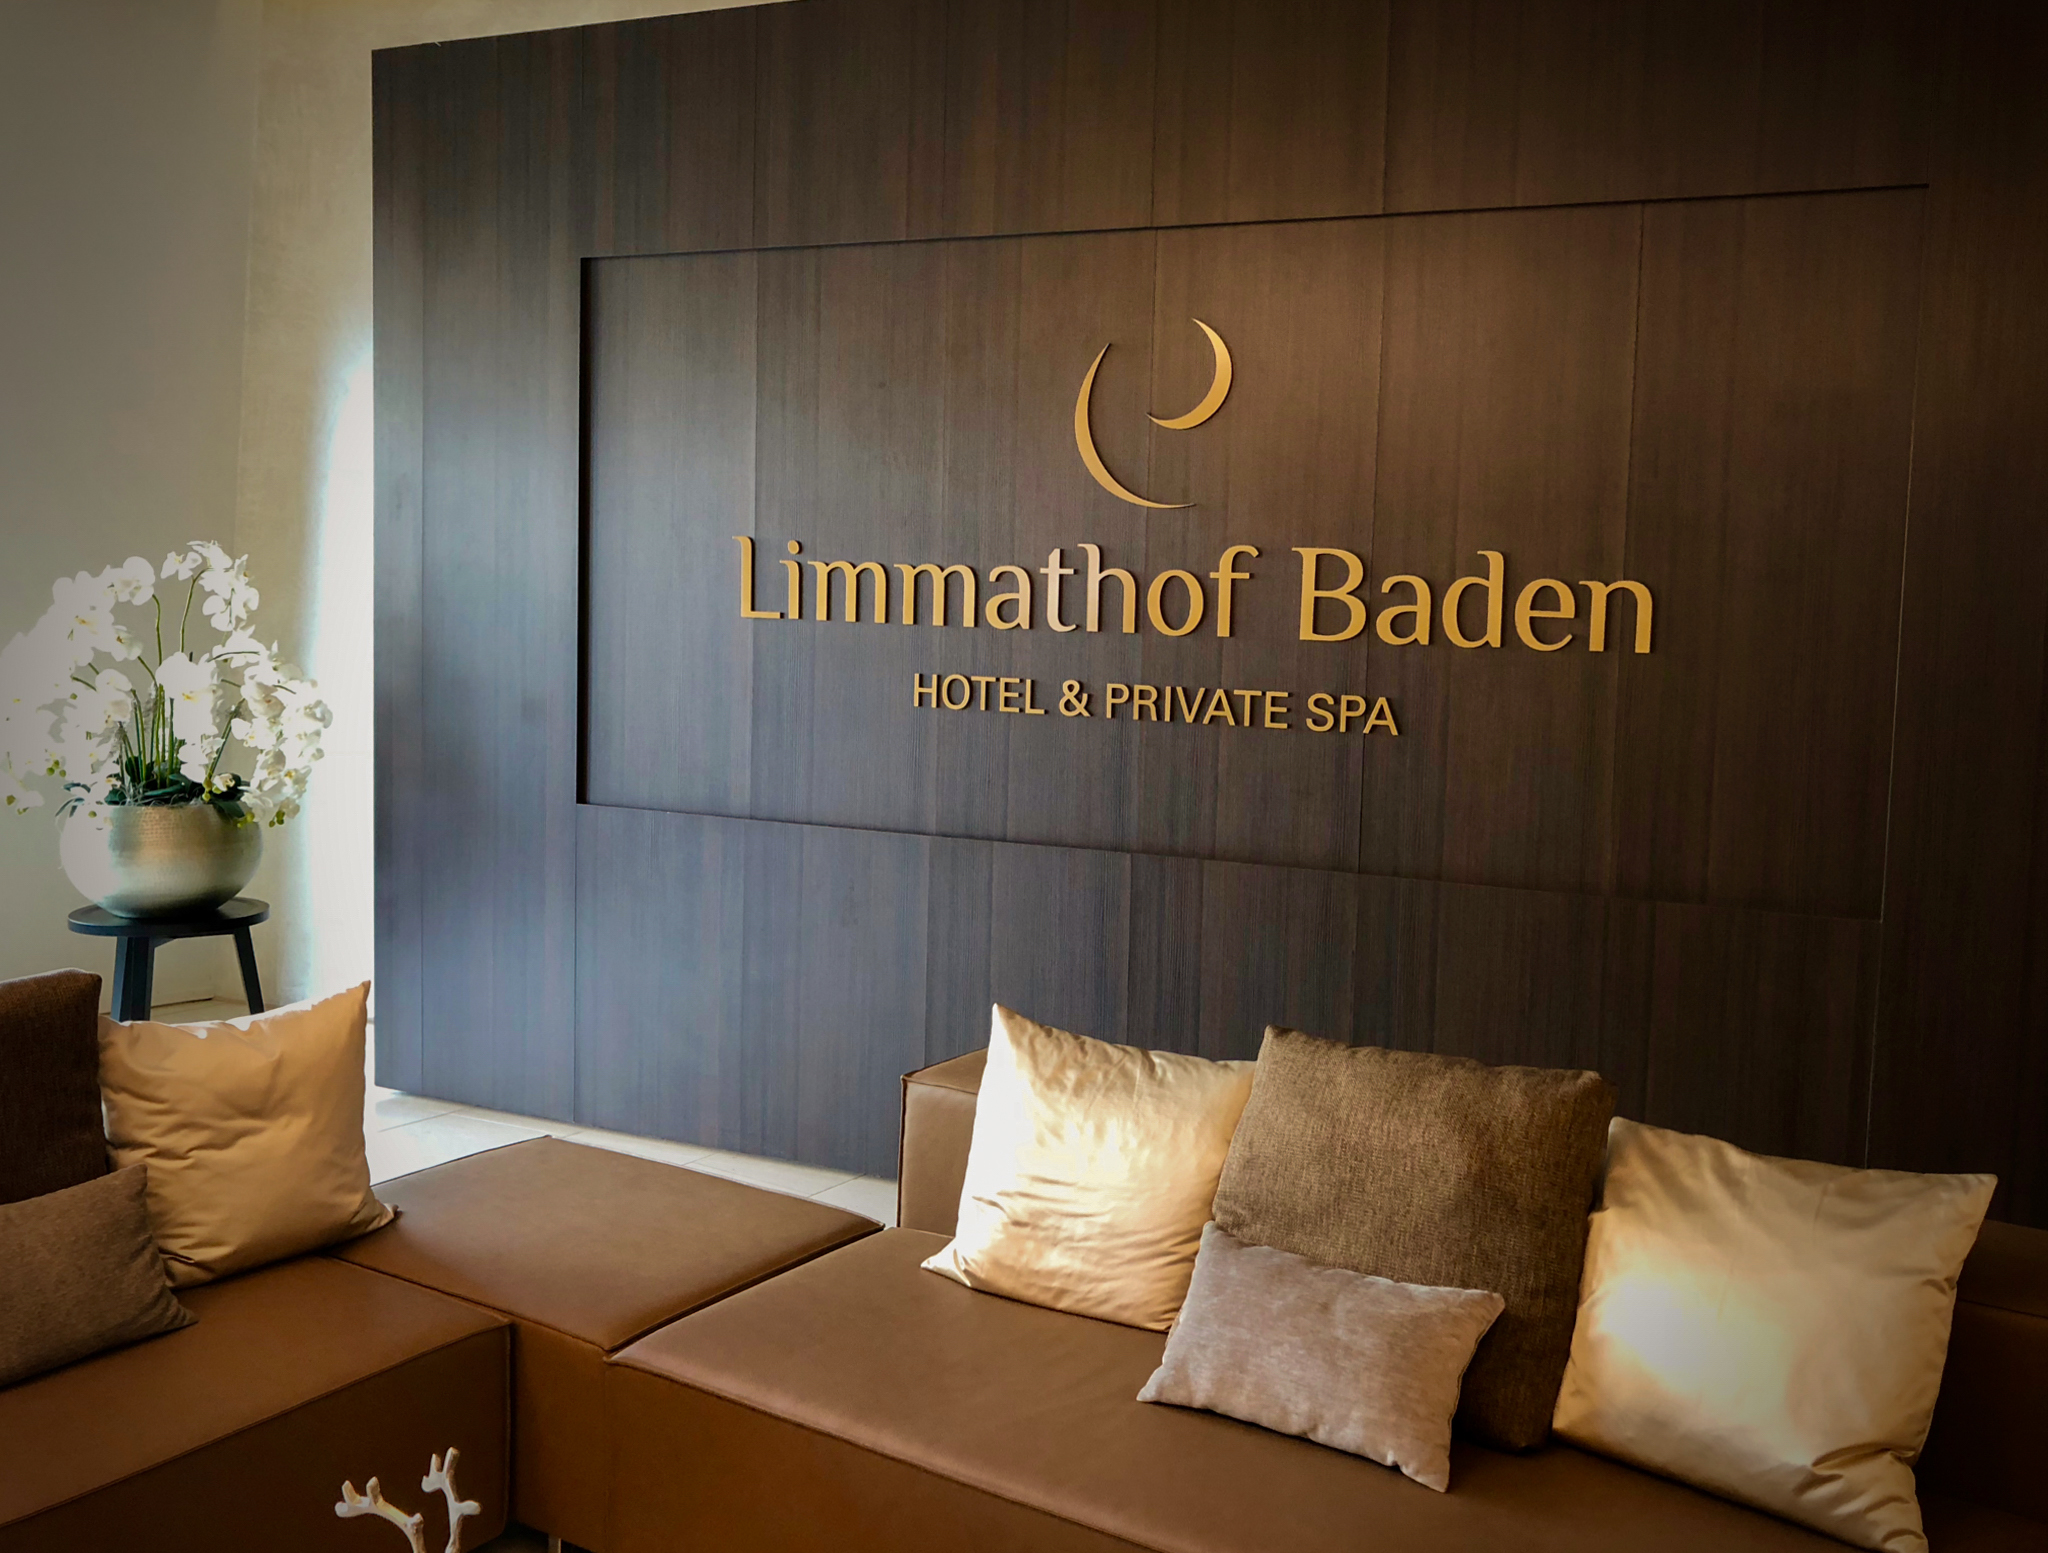 Limmathof Hotel & Private Spa | Mr and Mrs T on tour